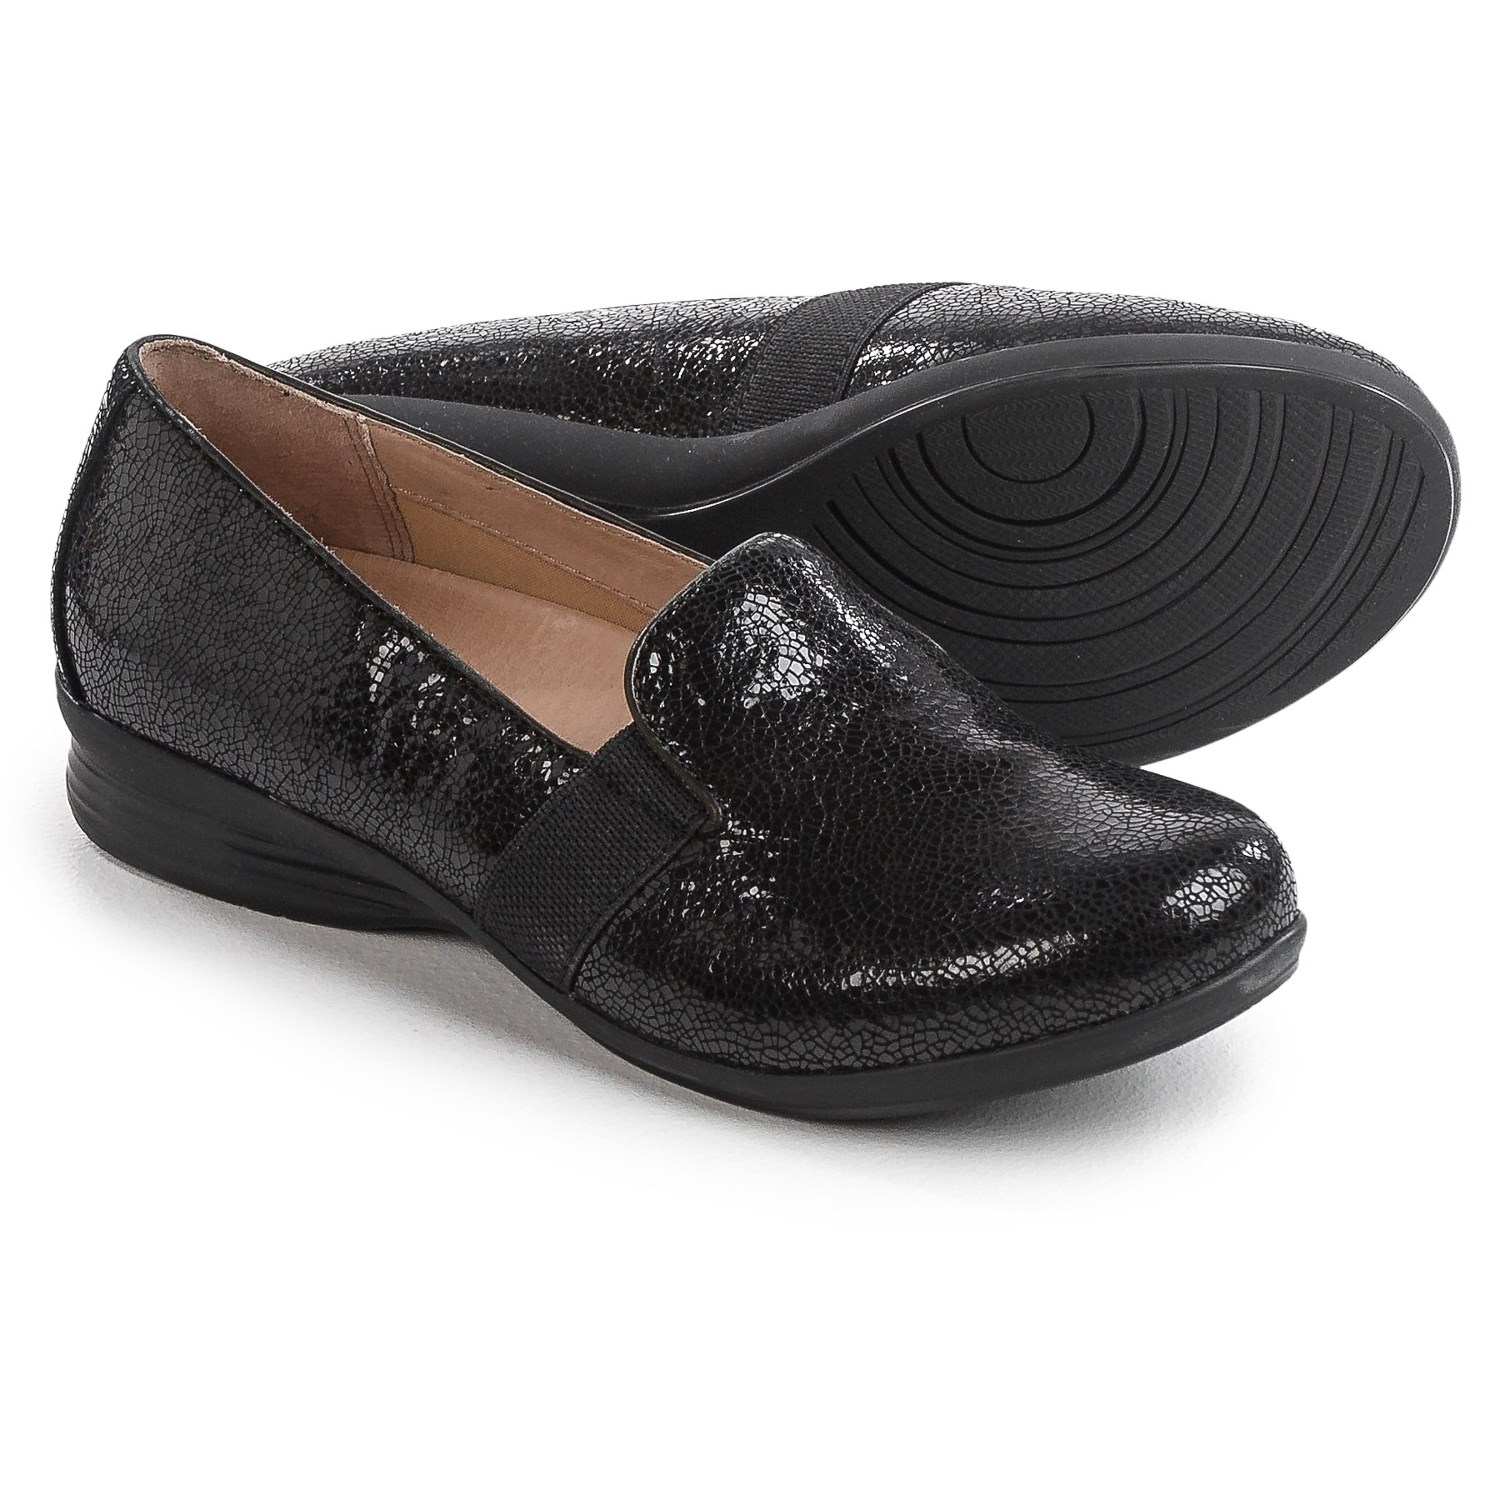 Dansko Womens Shoes